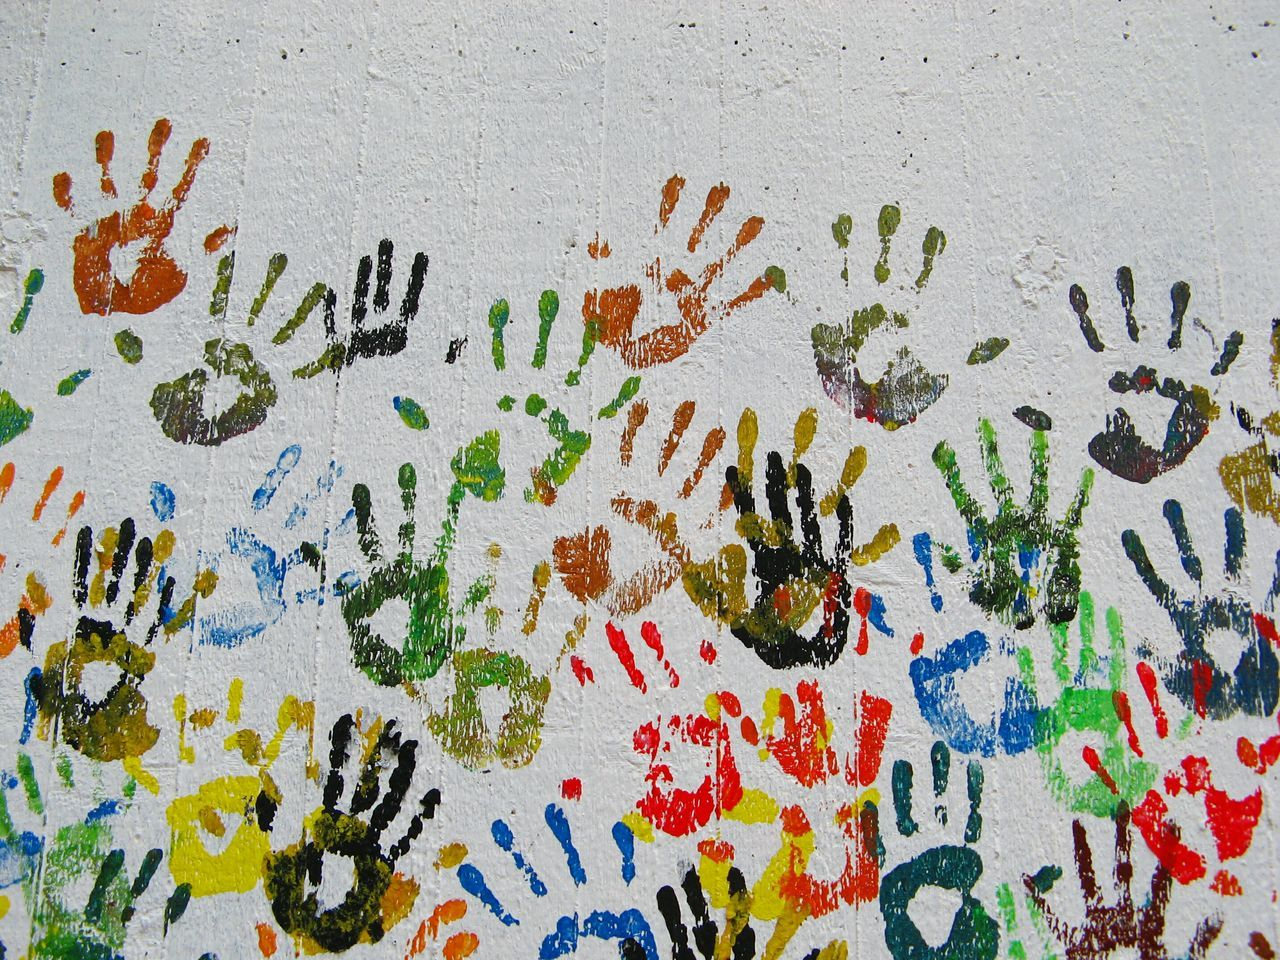 Muster Mix Textures And Surfaces Handmade Colors Streetart Lifestyles Childsplay Life In Colors Urban Lifestyle Only Color Different Cultures AMPt_community Union Simple Beauty Happy People ArtWork Hands On Hands Different Colors Collected Community Pattern, Texture, Shape And Form Everything In Its Place You & You Colors And Patterns Fine Art Berlin Streetart